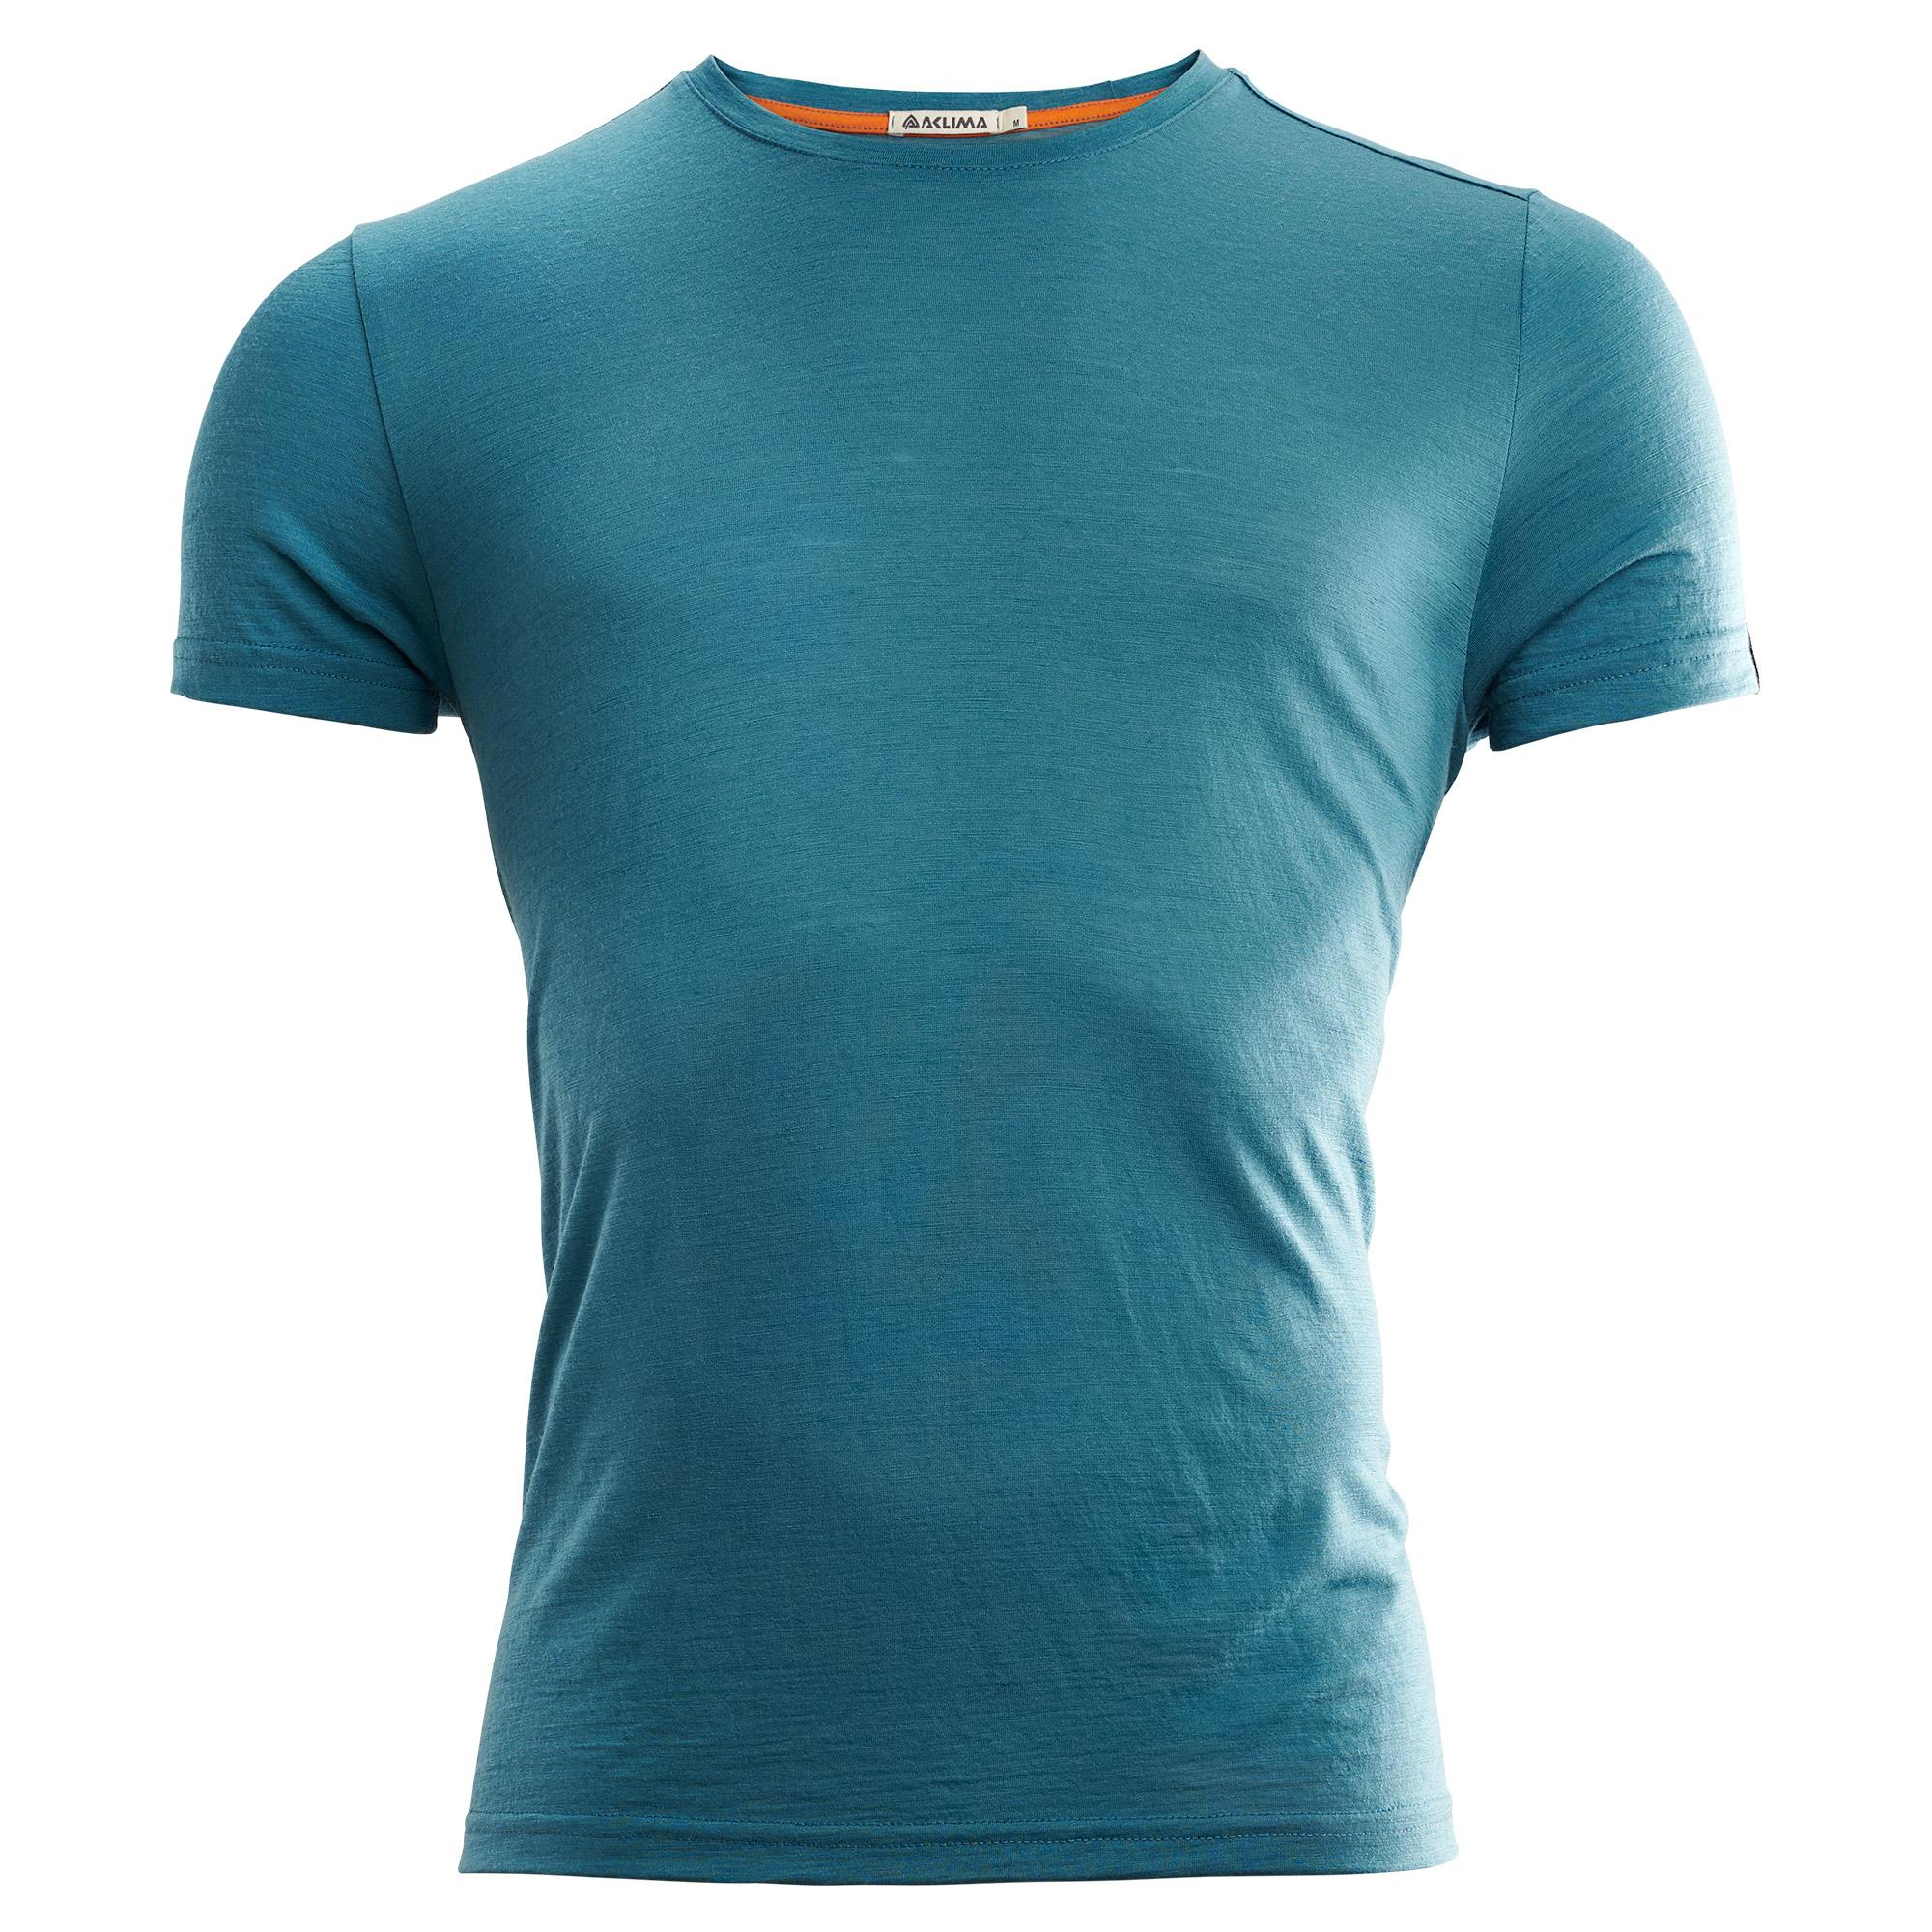 Aclima LightWool T-shirt M